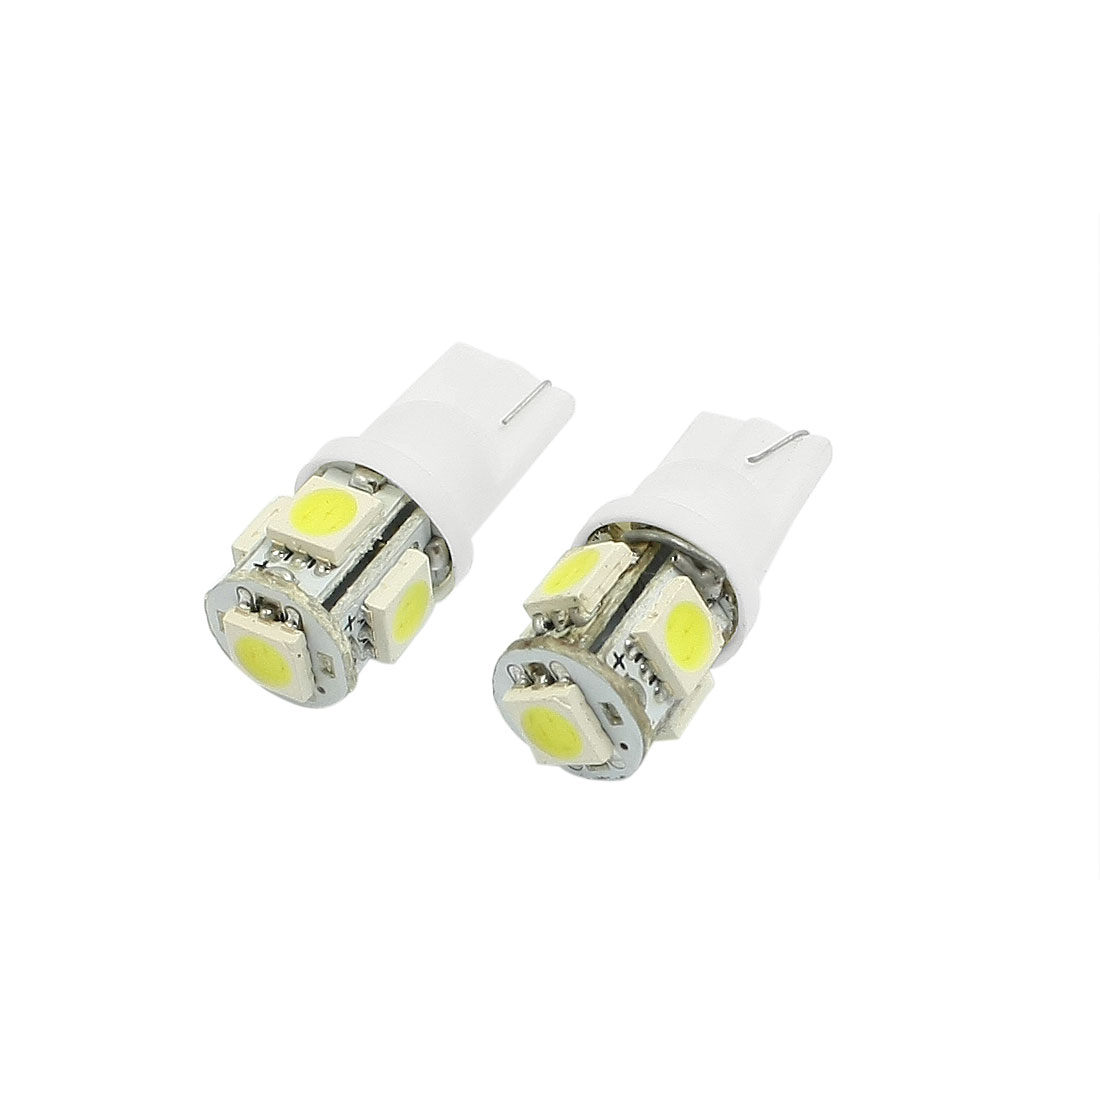 2 Pcs White Car T10 W5W White 5050 SMD 5 LED Bulb License Plate Light Lamp